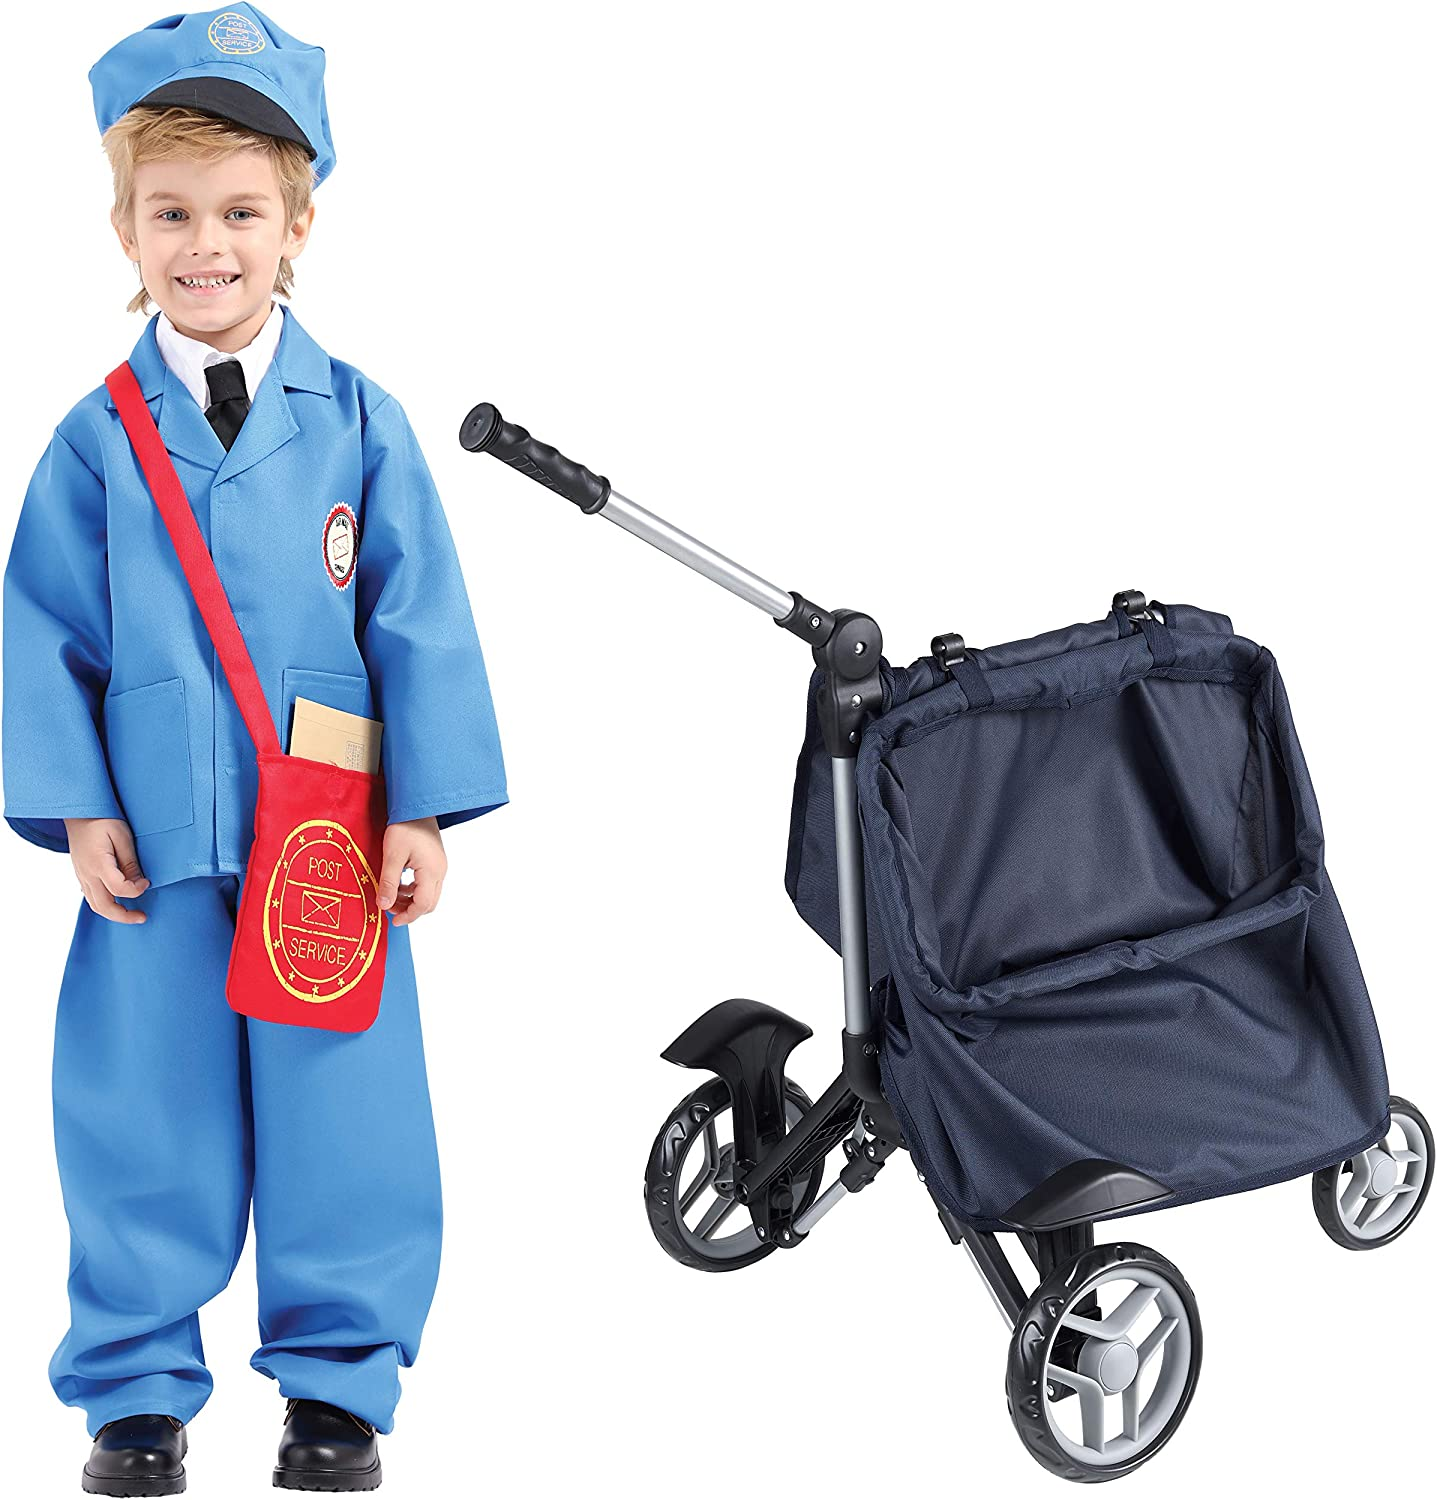 Mommy and Me Mail Carrier for Pretend Mailman - Kids Postman Cart Toy for Mail and Letters Delivery with Mail Bag (Costume Not Included)